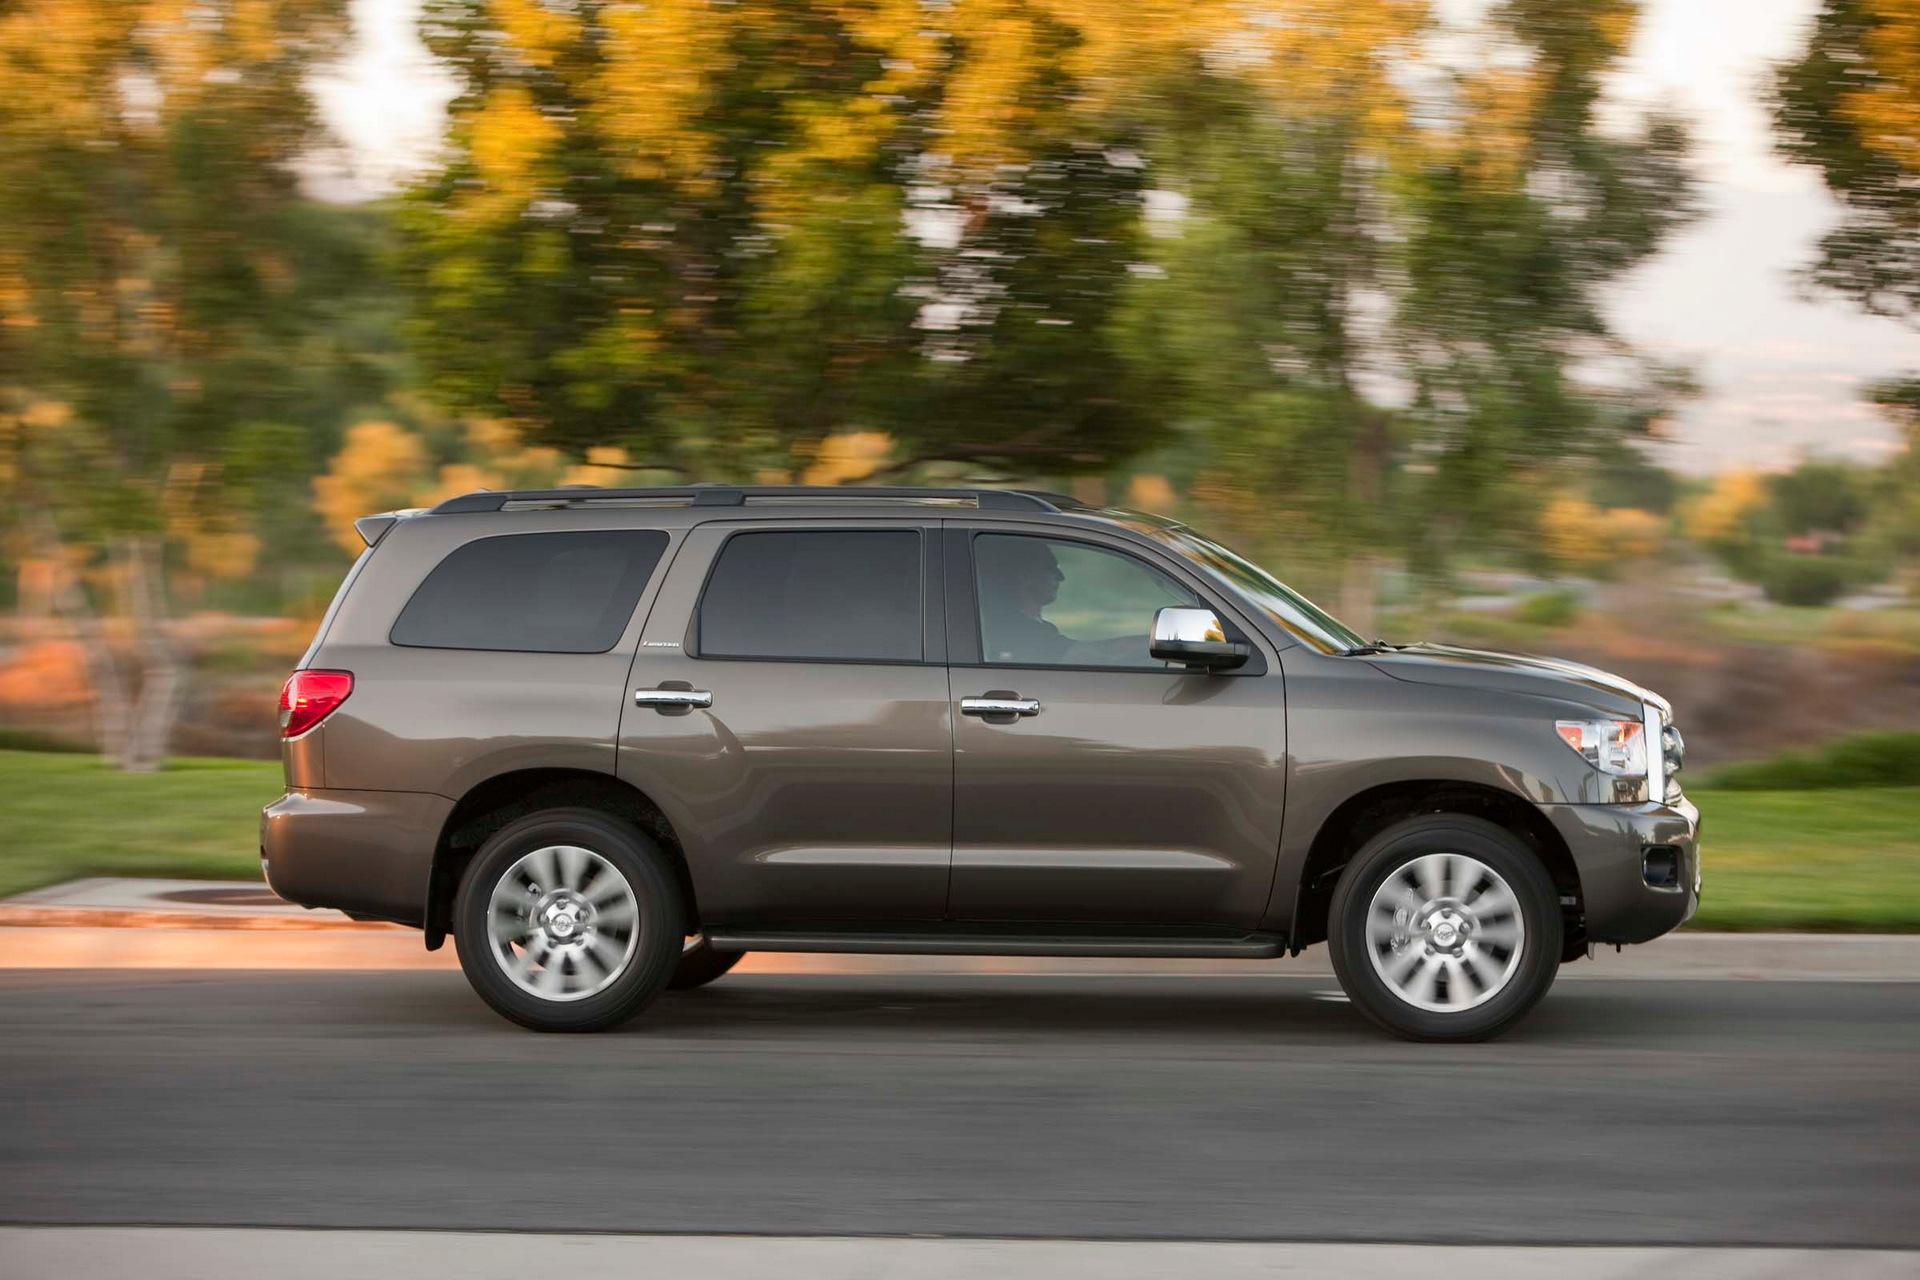 2016 Toyota Sequoia © Toyota Motor Corporation